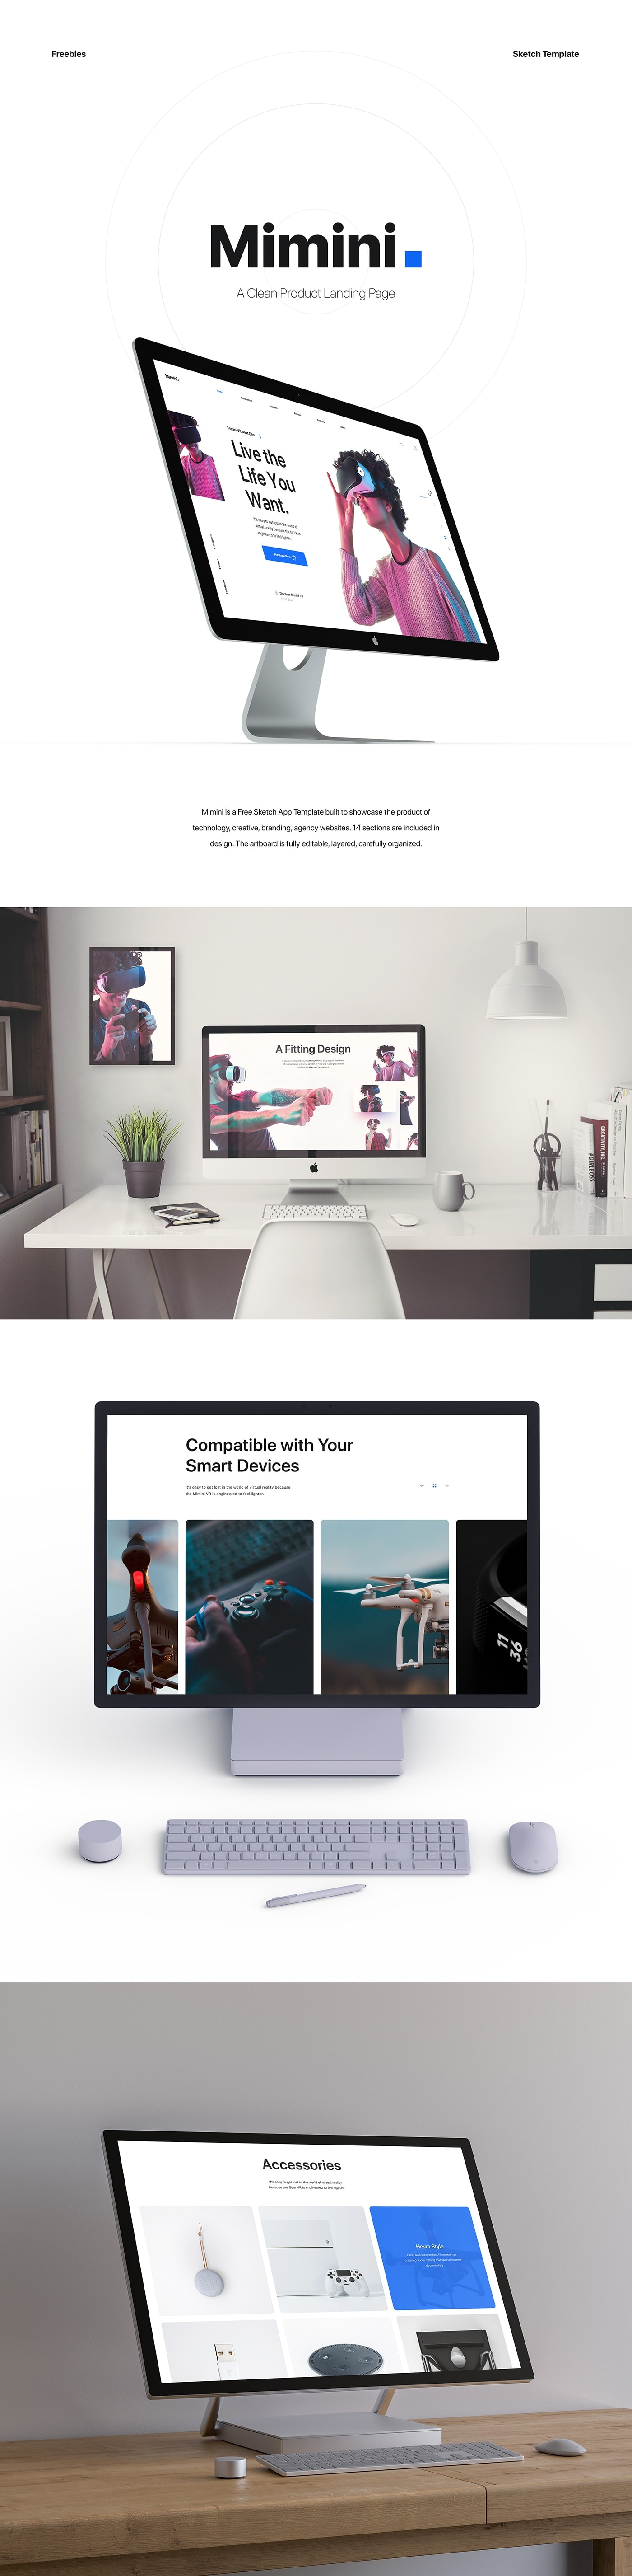 Mimini Free Landing Page from UIGarage